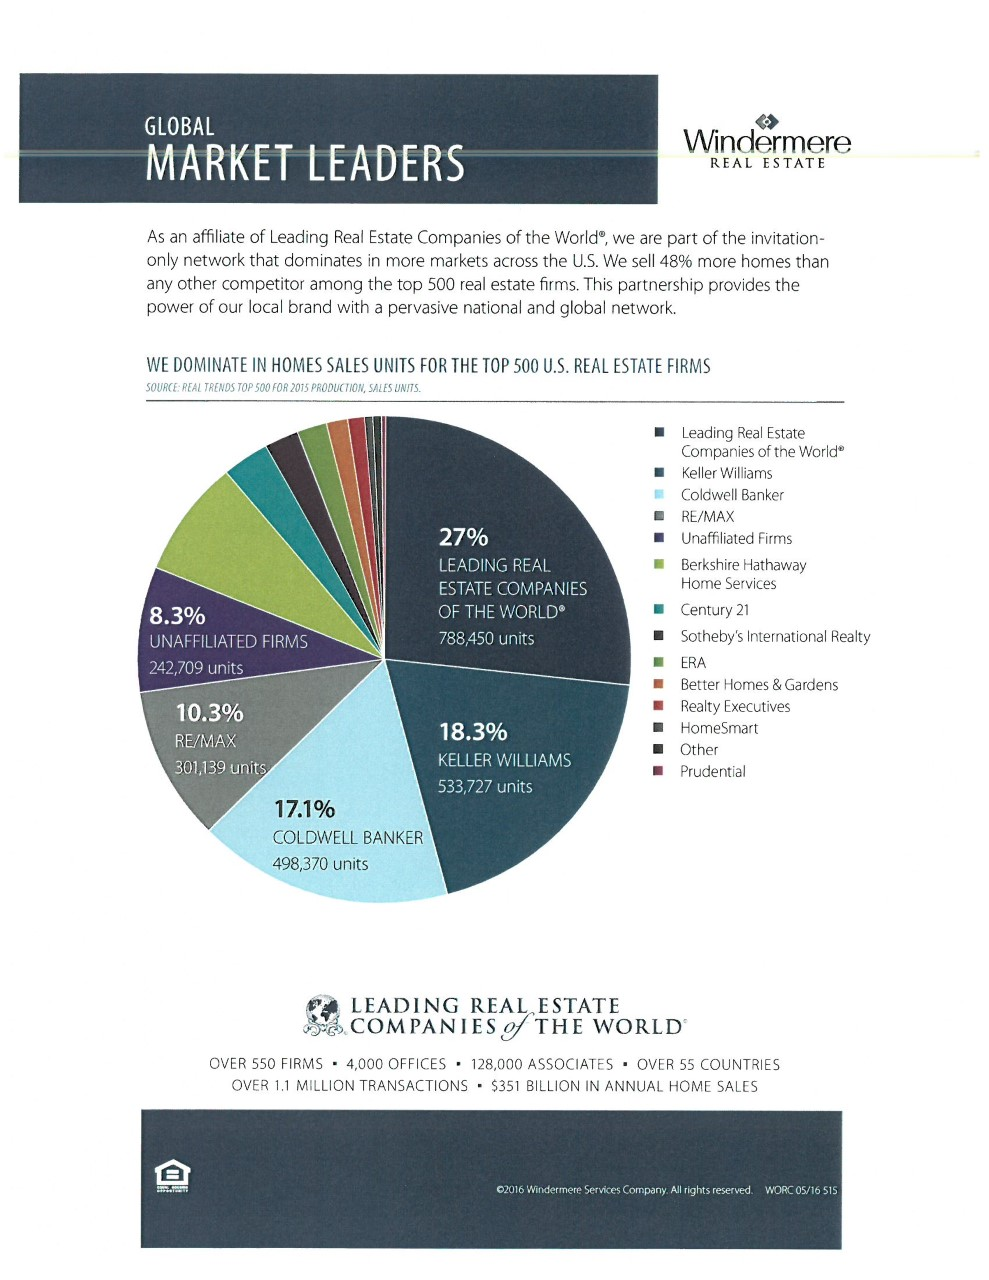 Global Market Leaders